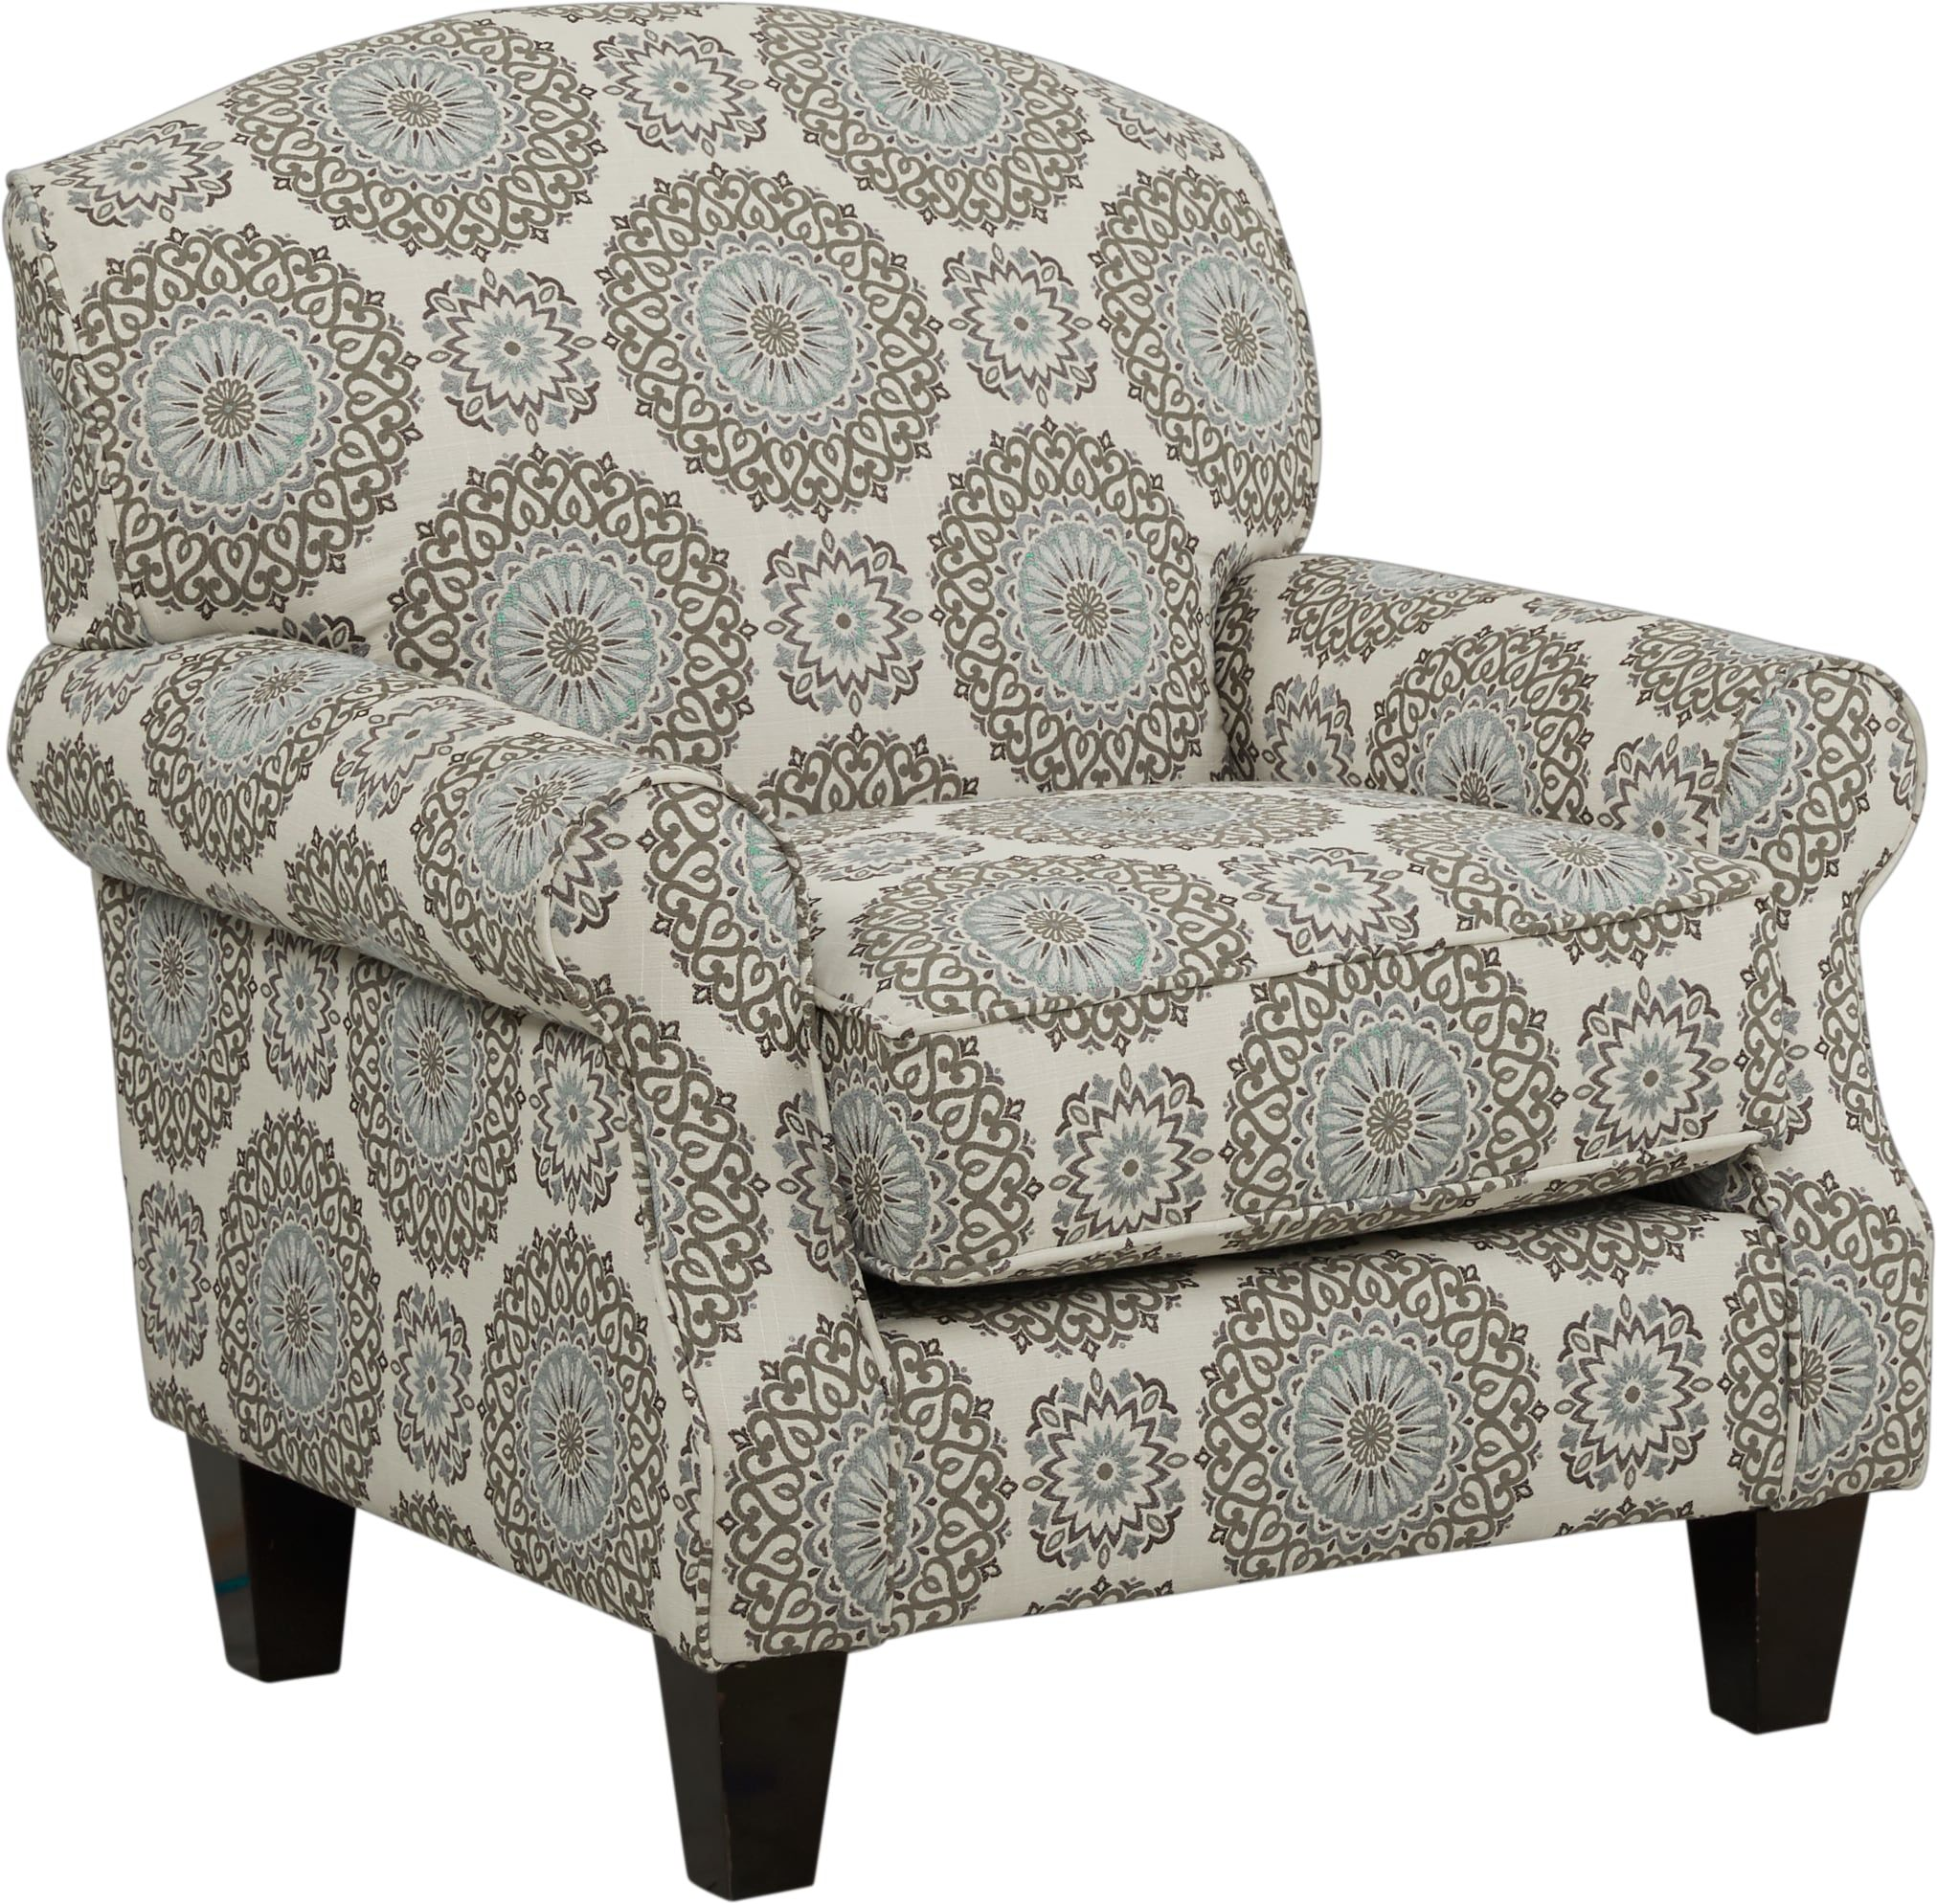 Pennington Blue Medallion Accent Chair In 2019 Accent